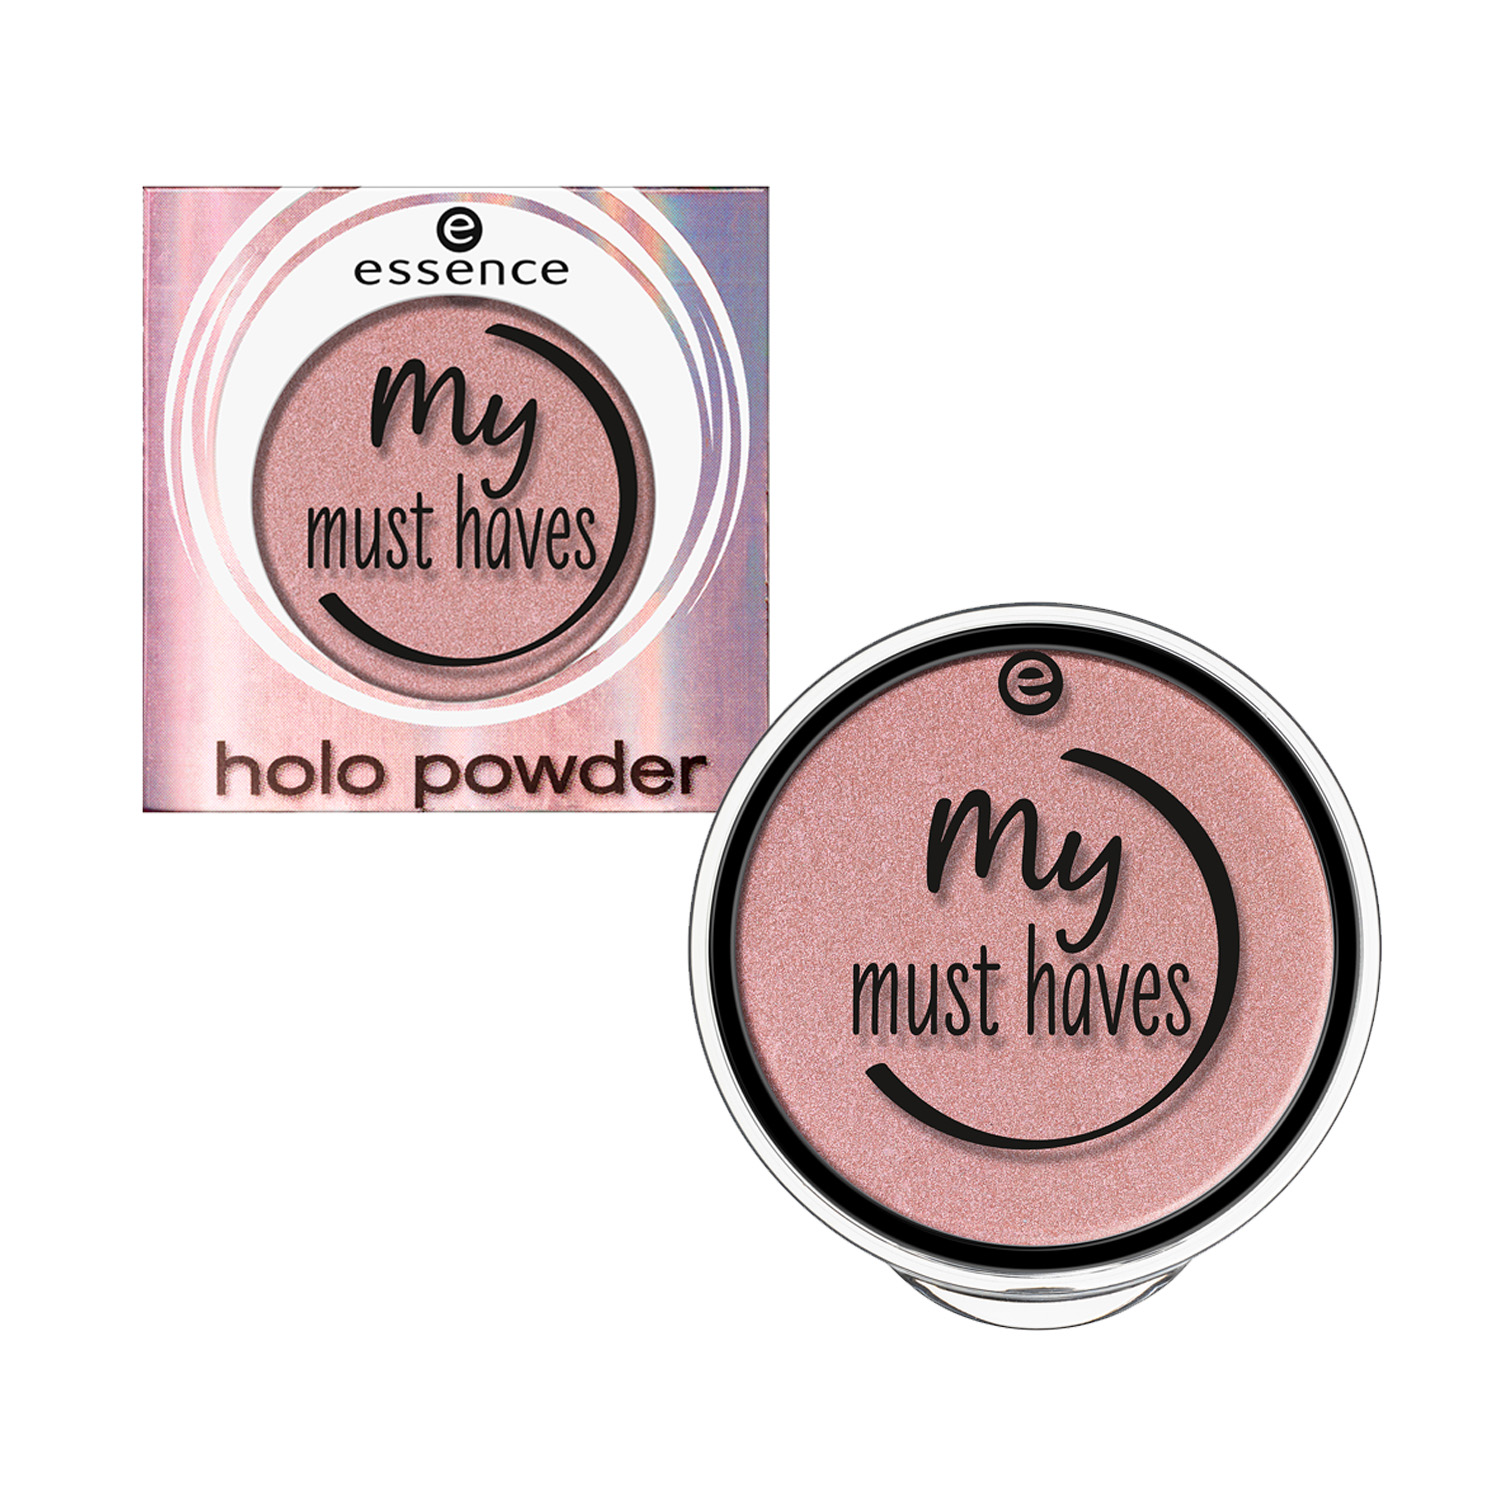 ess.my must haves holo powder 02